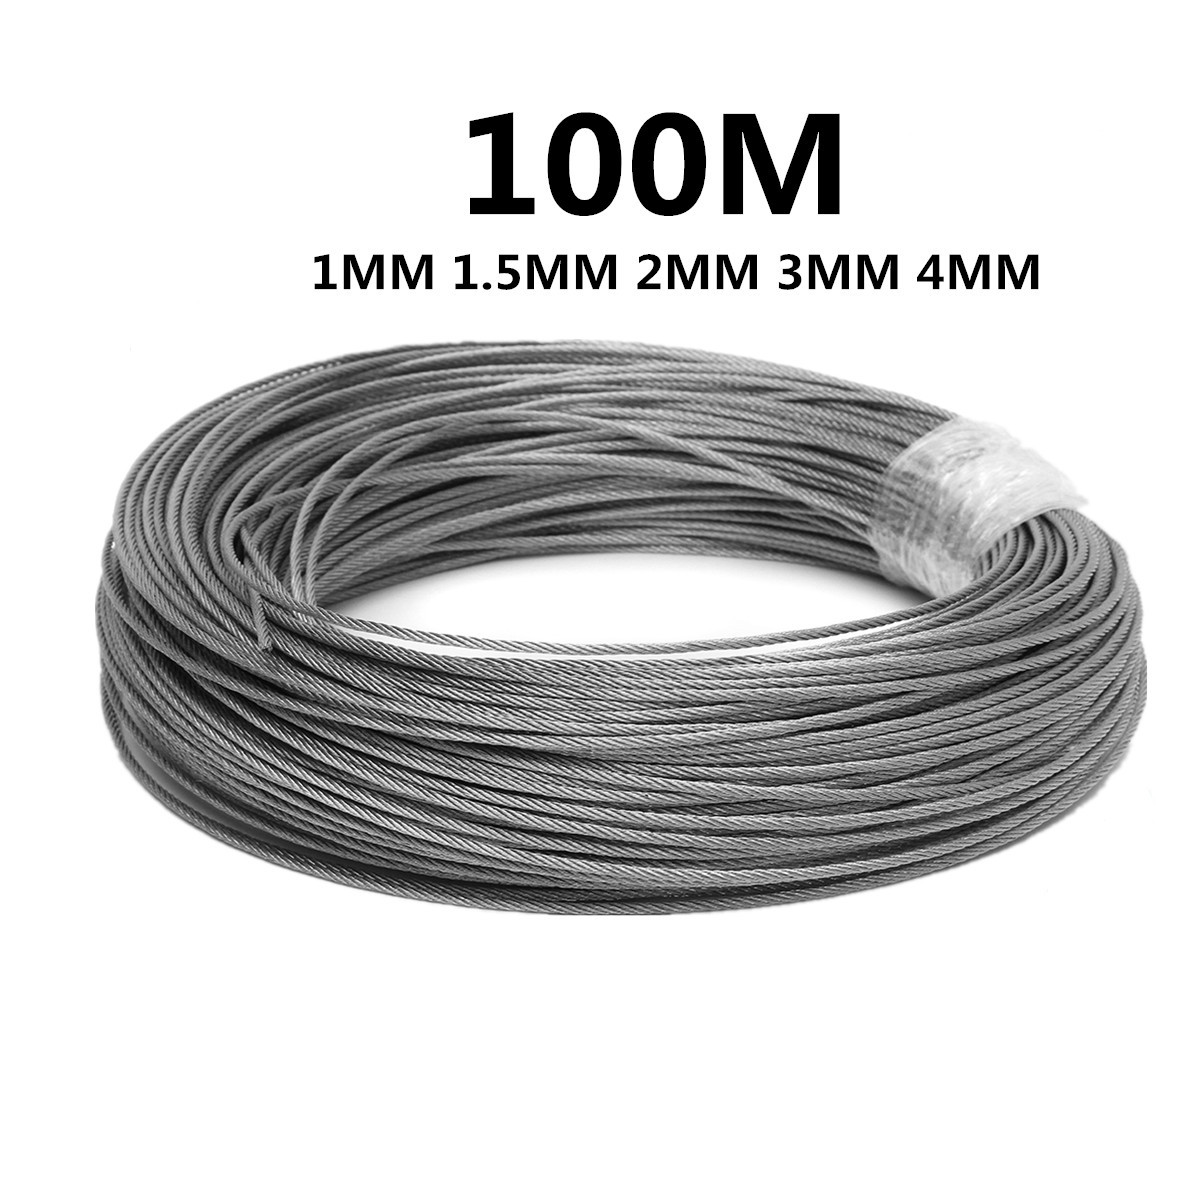 50M/100M 304 Stainless Steel Wire Rope Soft Fishing Lifting Cable 7*7 Clothesline 1mm/ 1.5mm/2mm